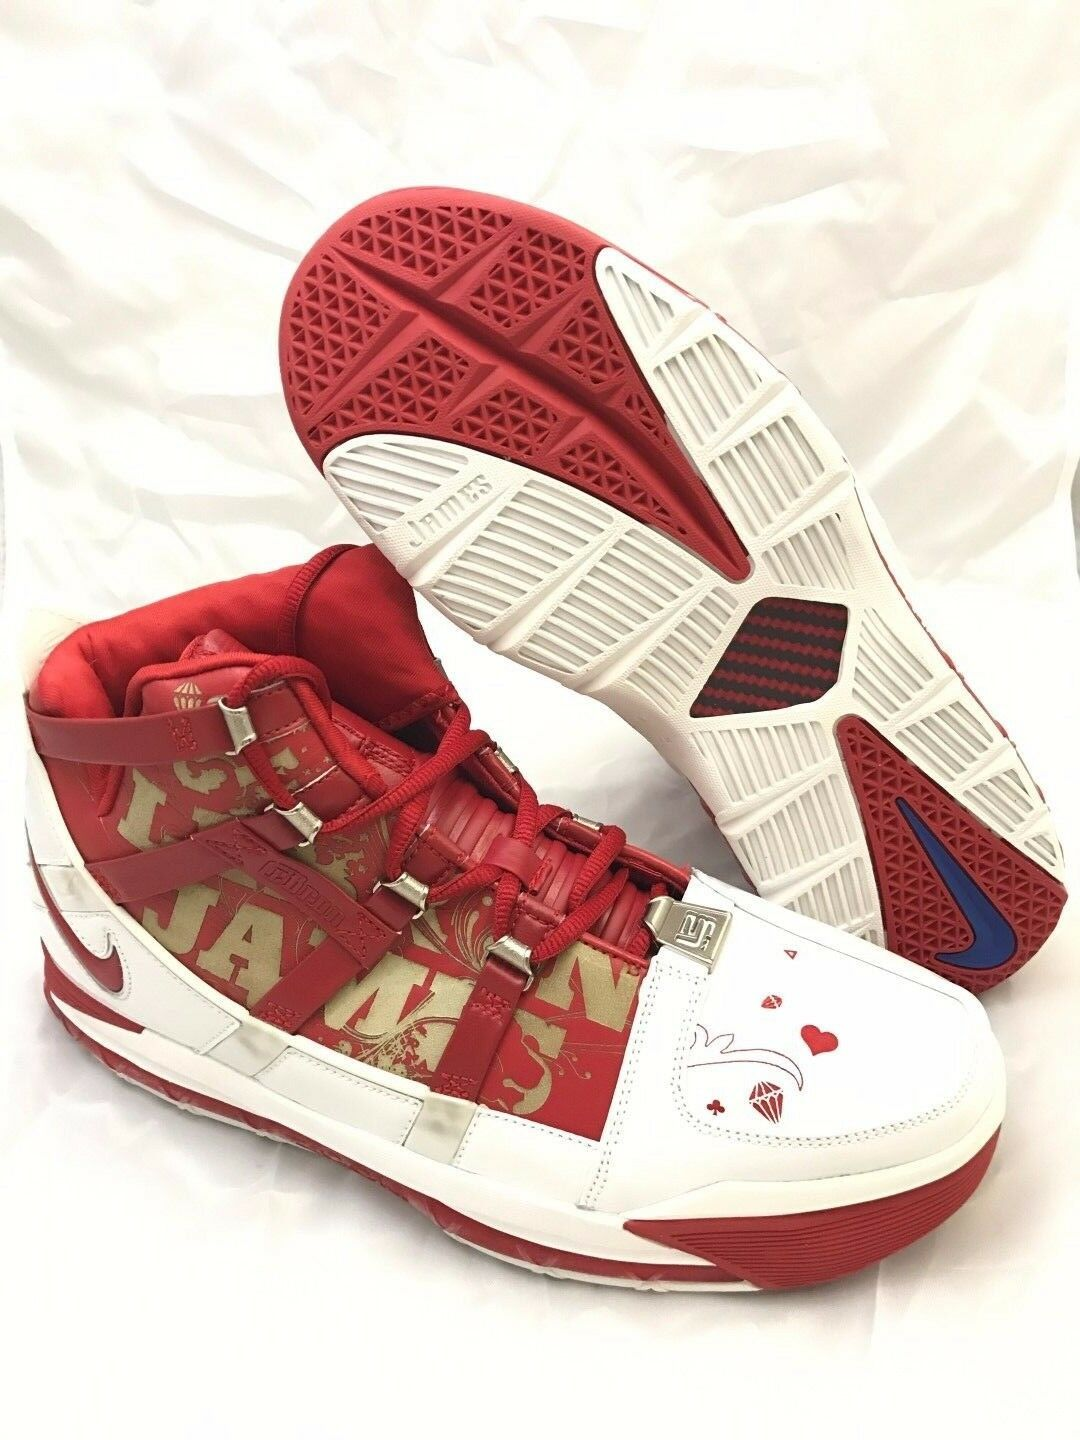 NEW DS Nike Zoom LeBron III Price reduction All Star Game Red 2018 Comfortable The most popular shoes for men and women